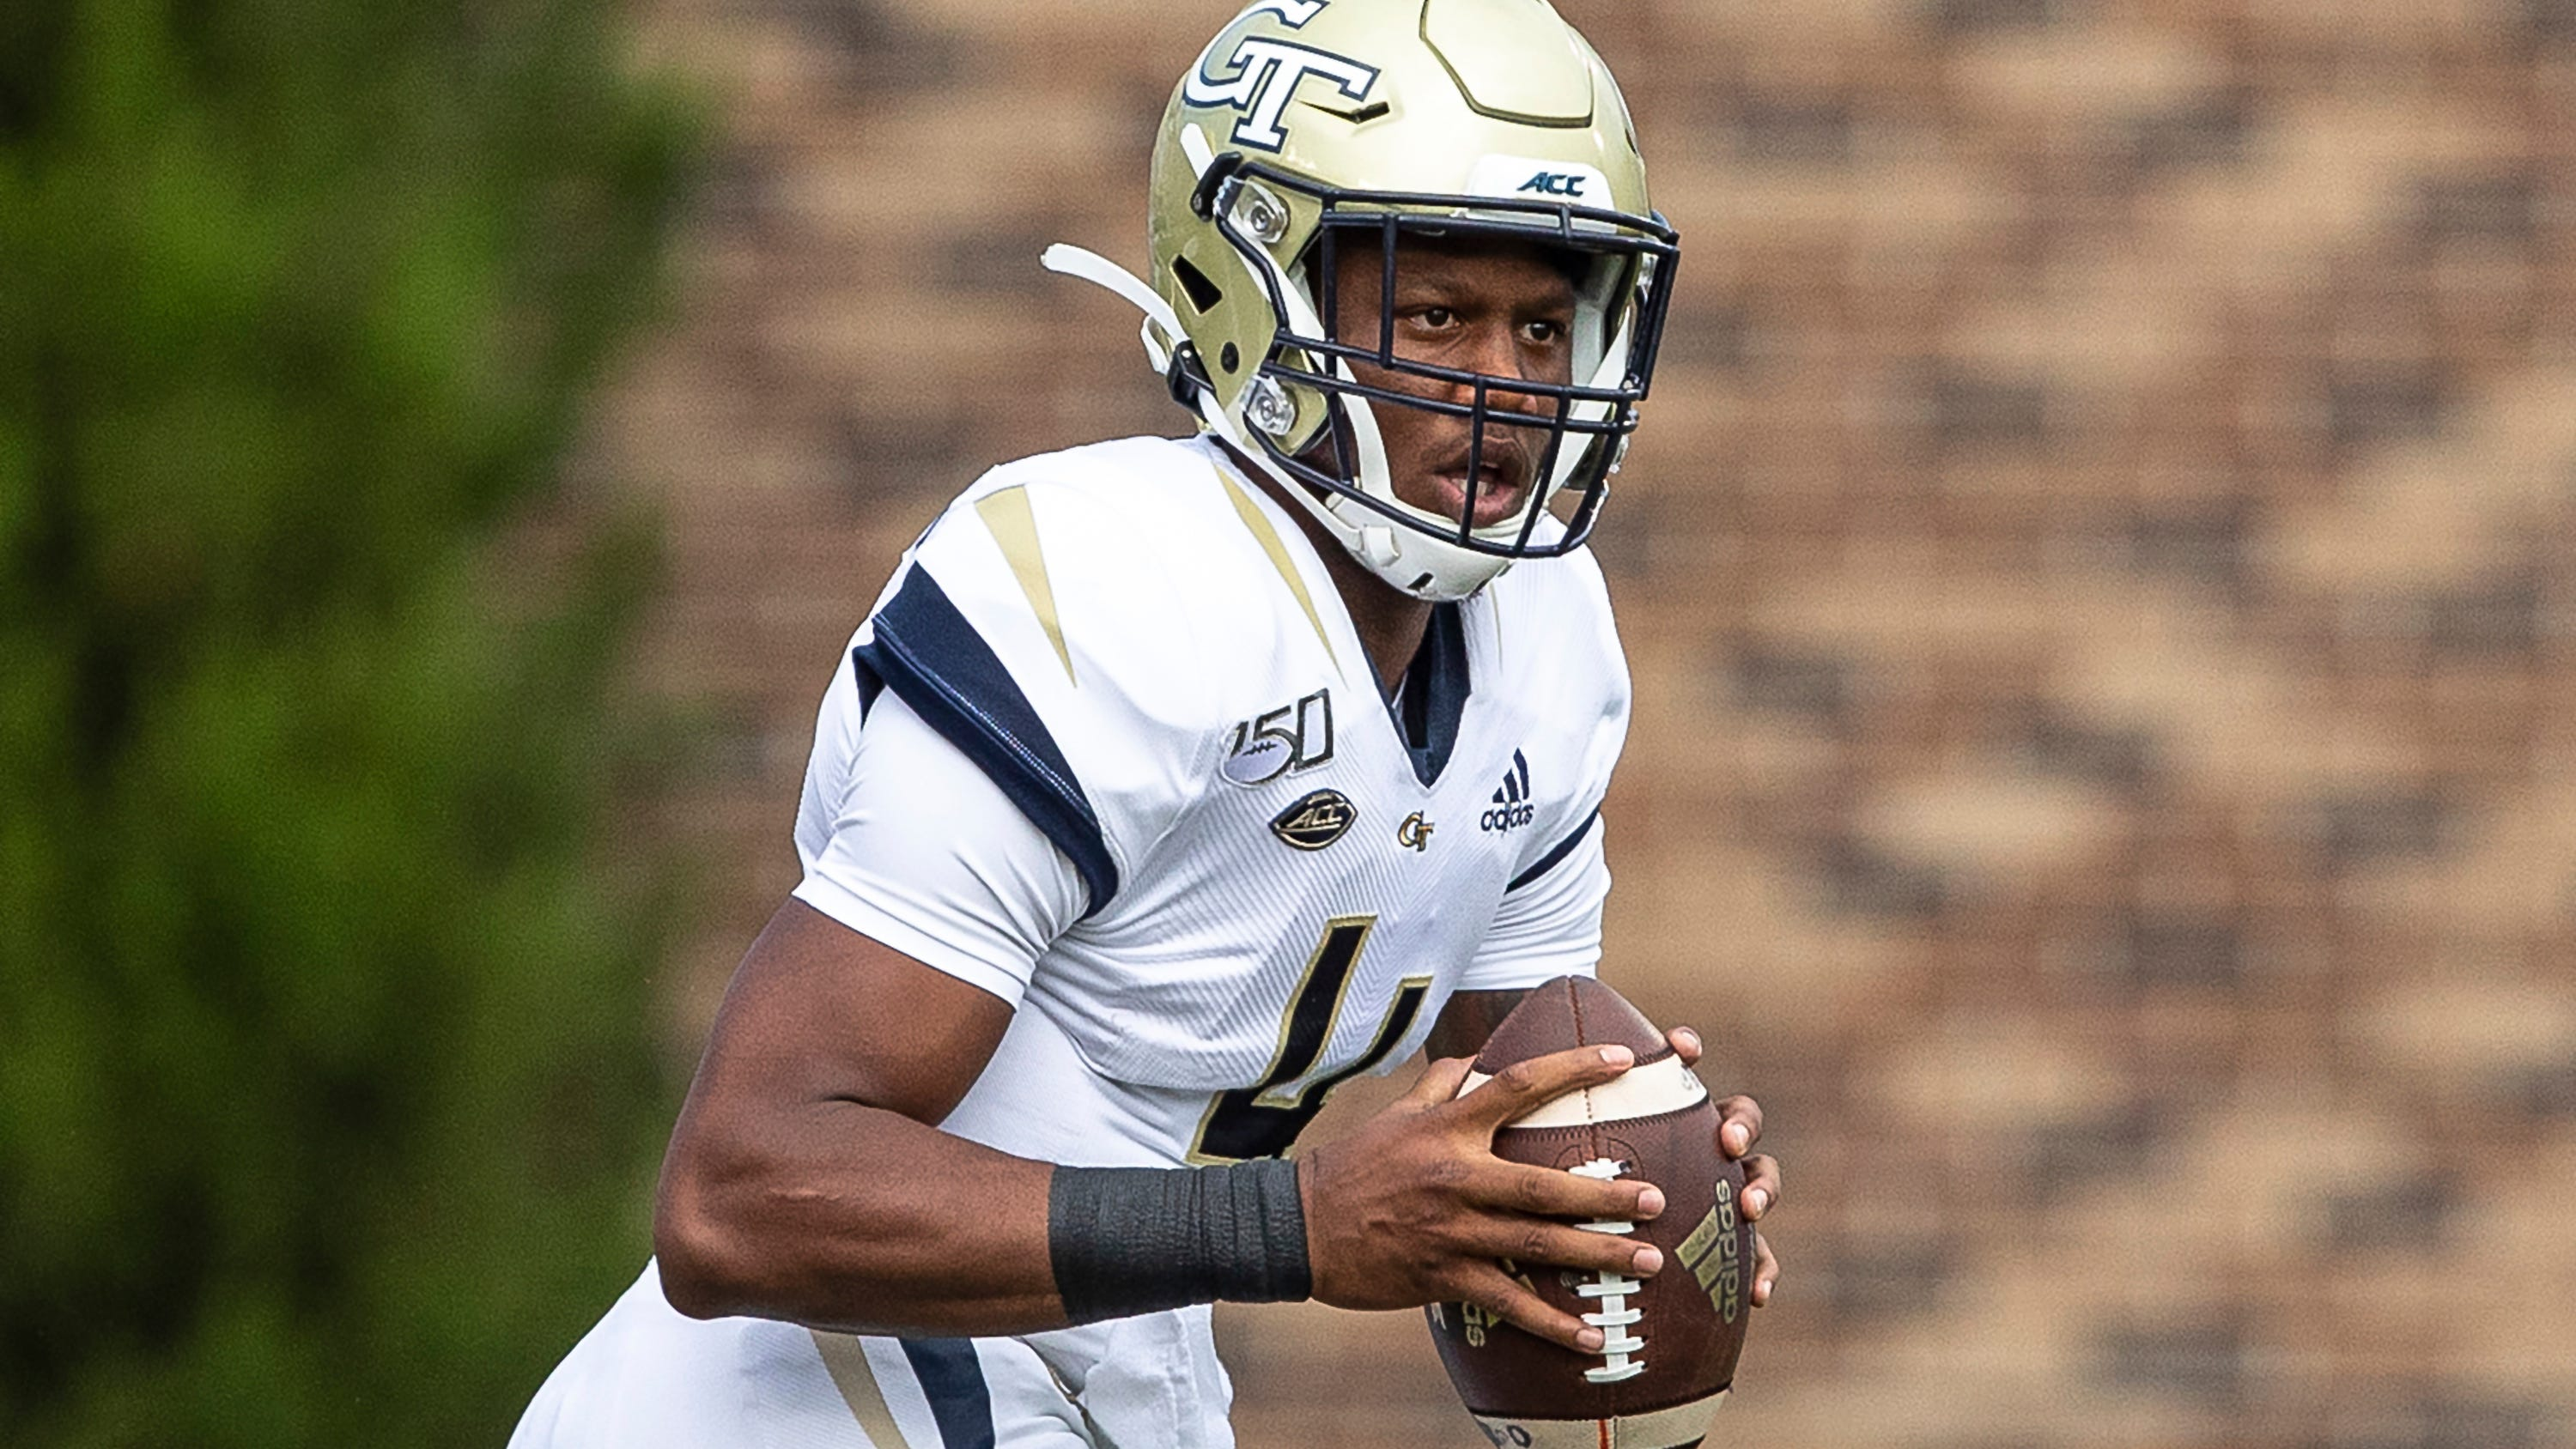 Sims Looks To Lead Ga Tech To Another Upset Vs No 14 Ucf